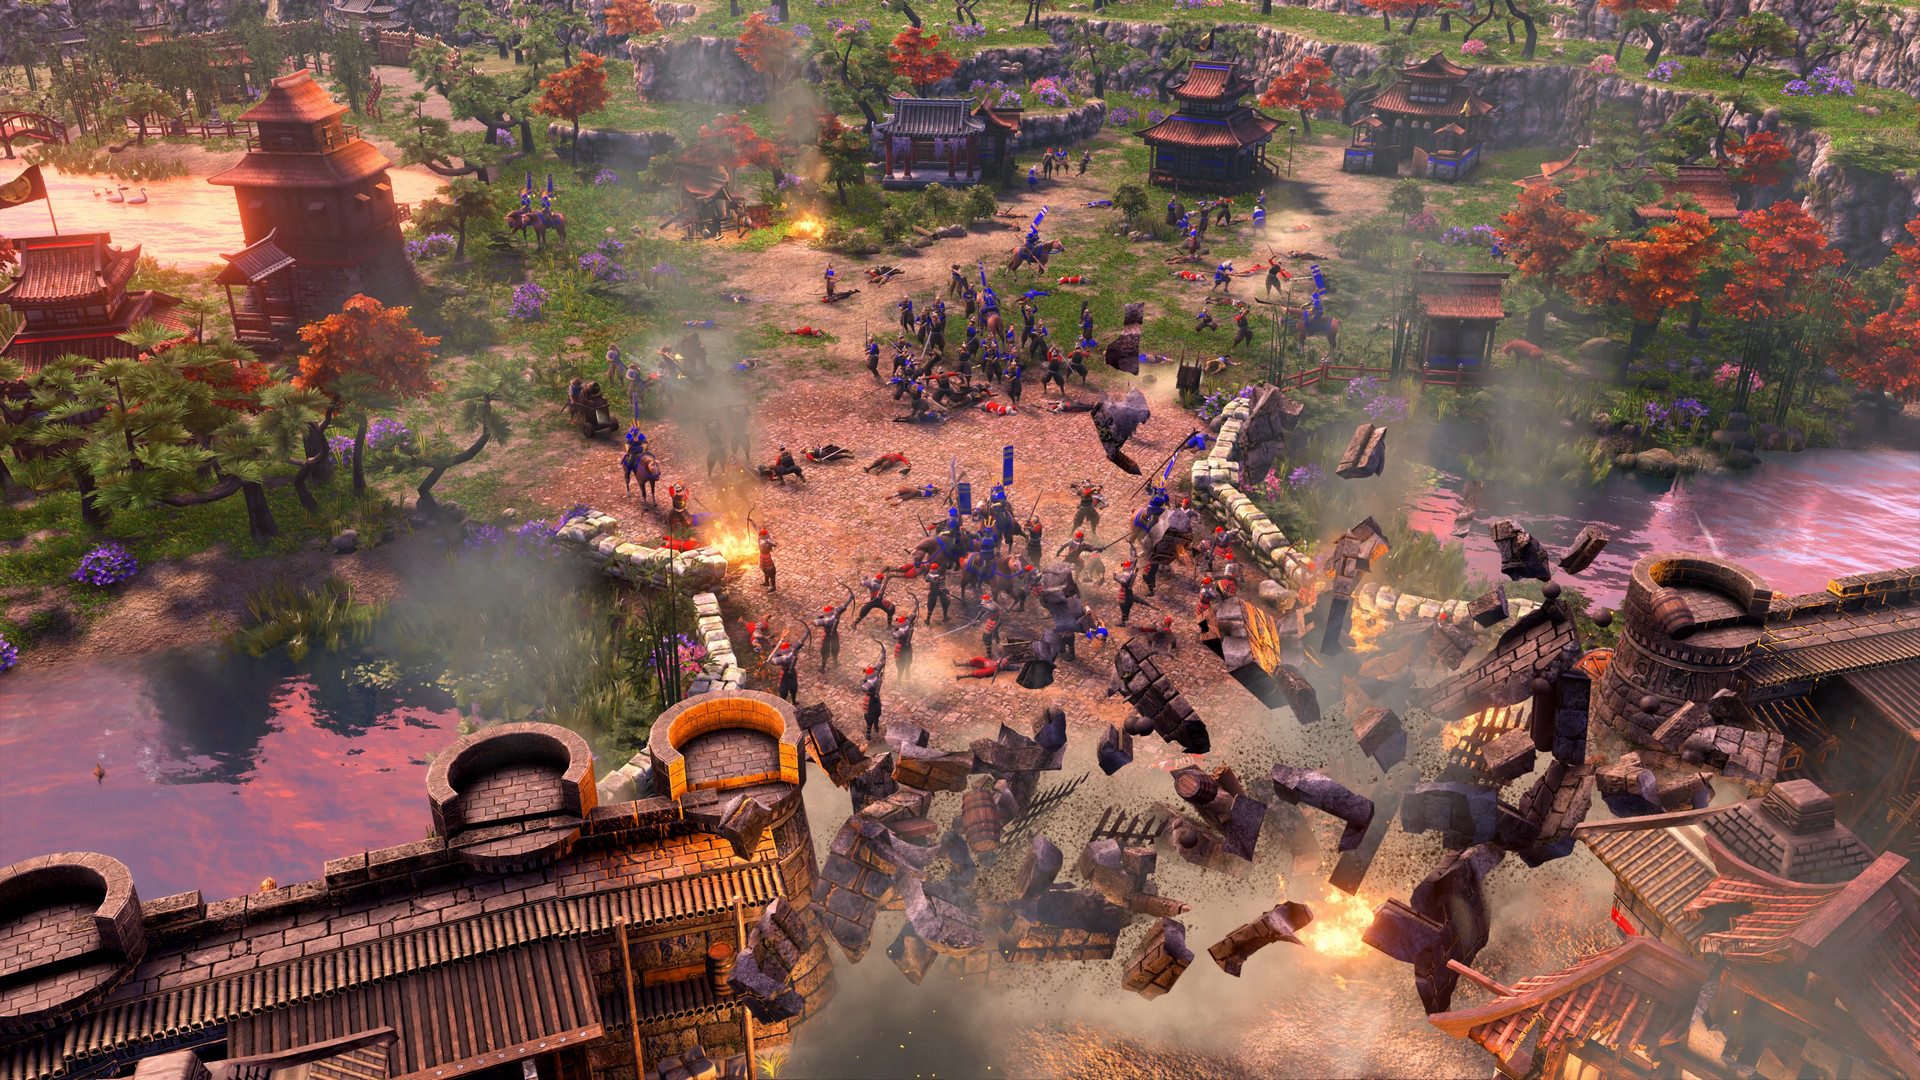 Find the best gaming PC for AoE3:D